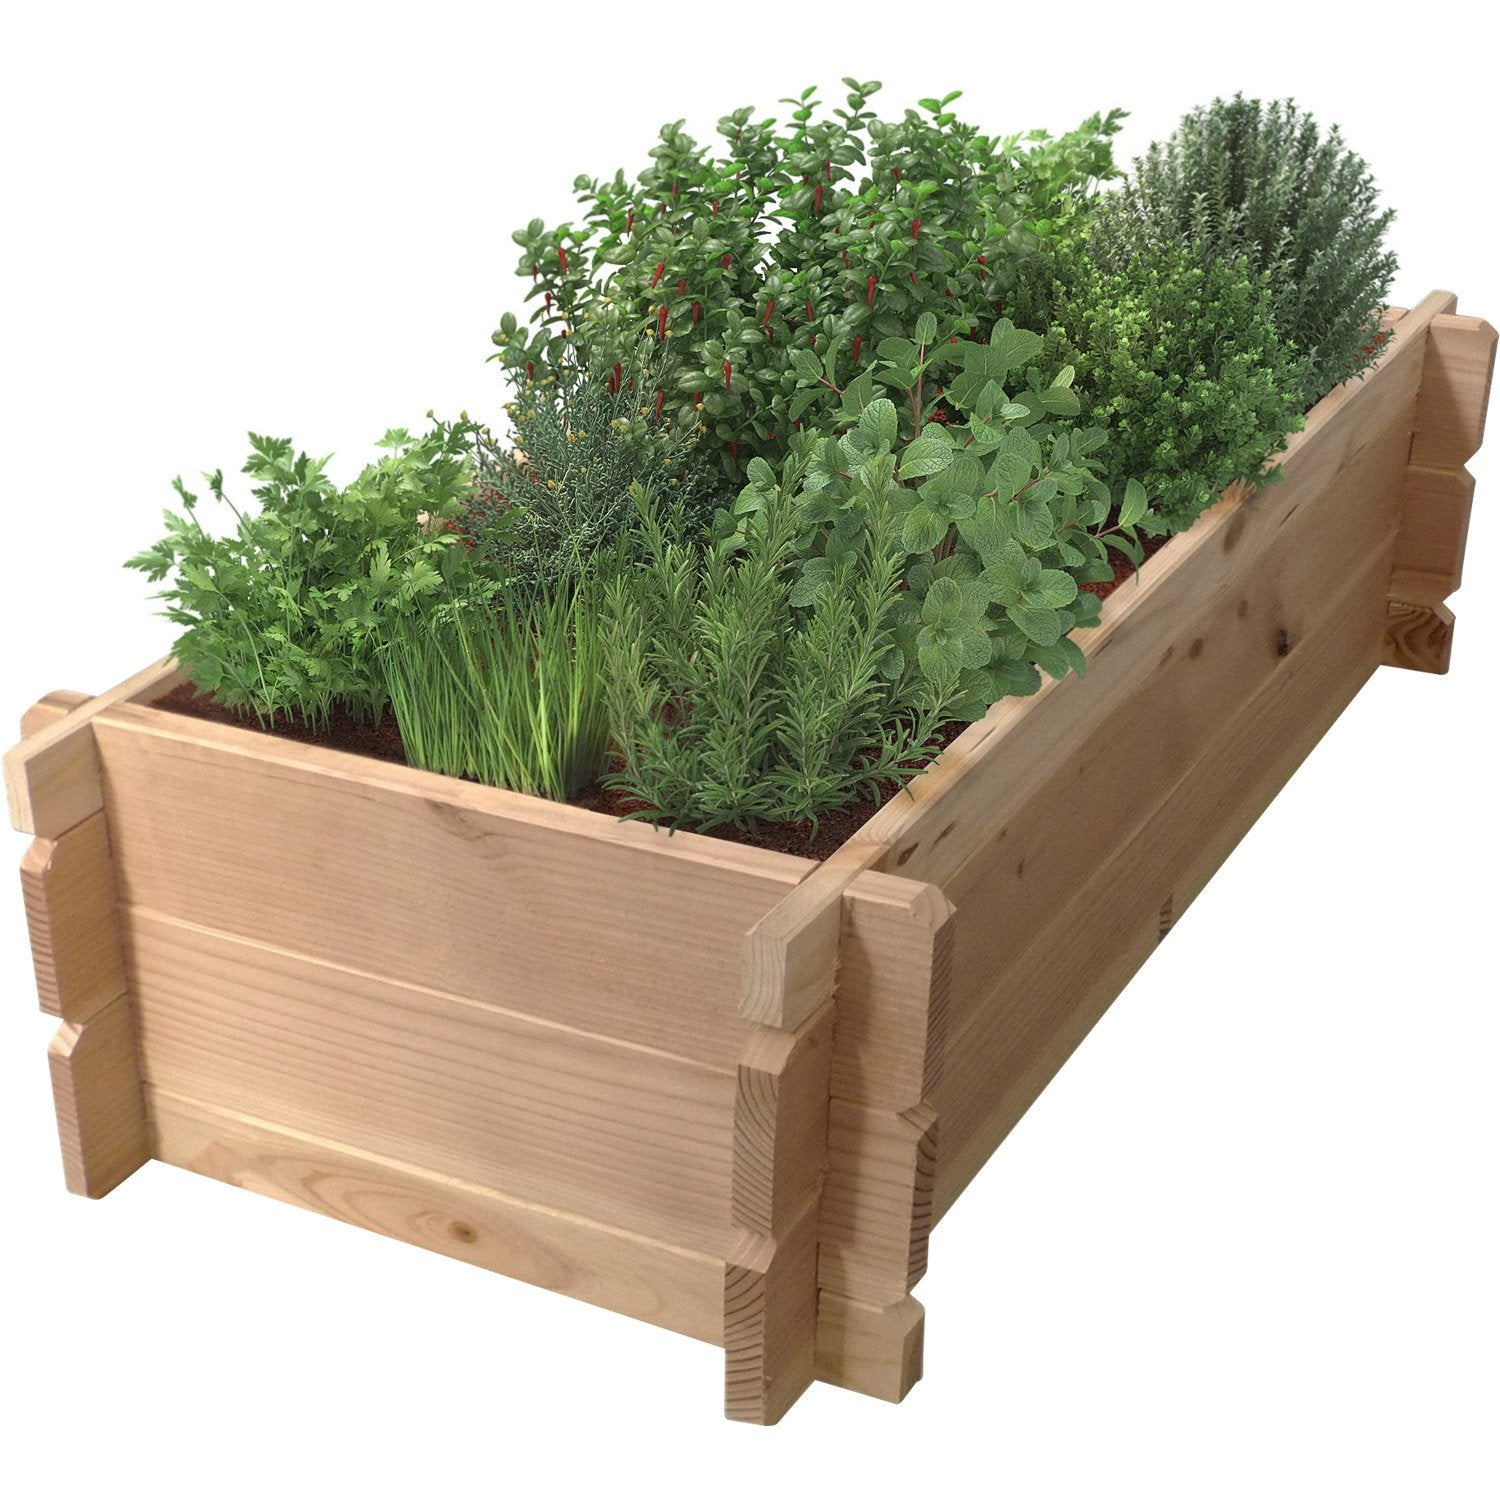 Carr potager geolia capucine naturel x x for Carre de jardin